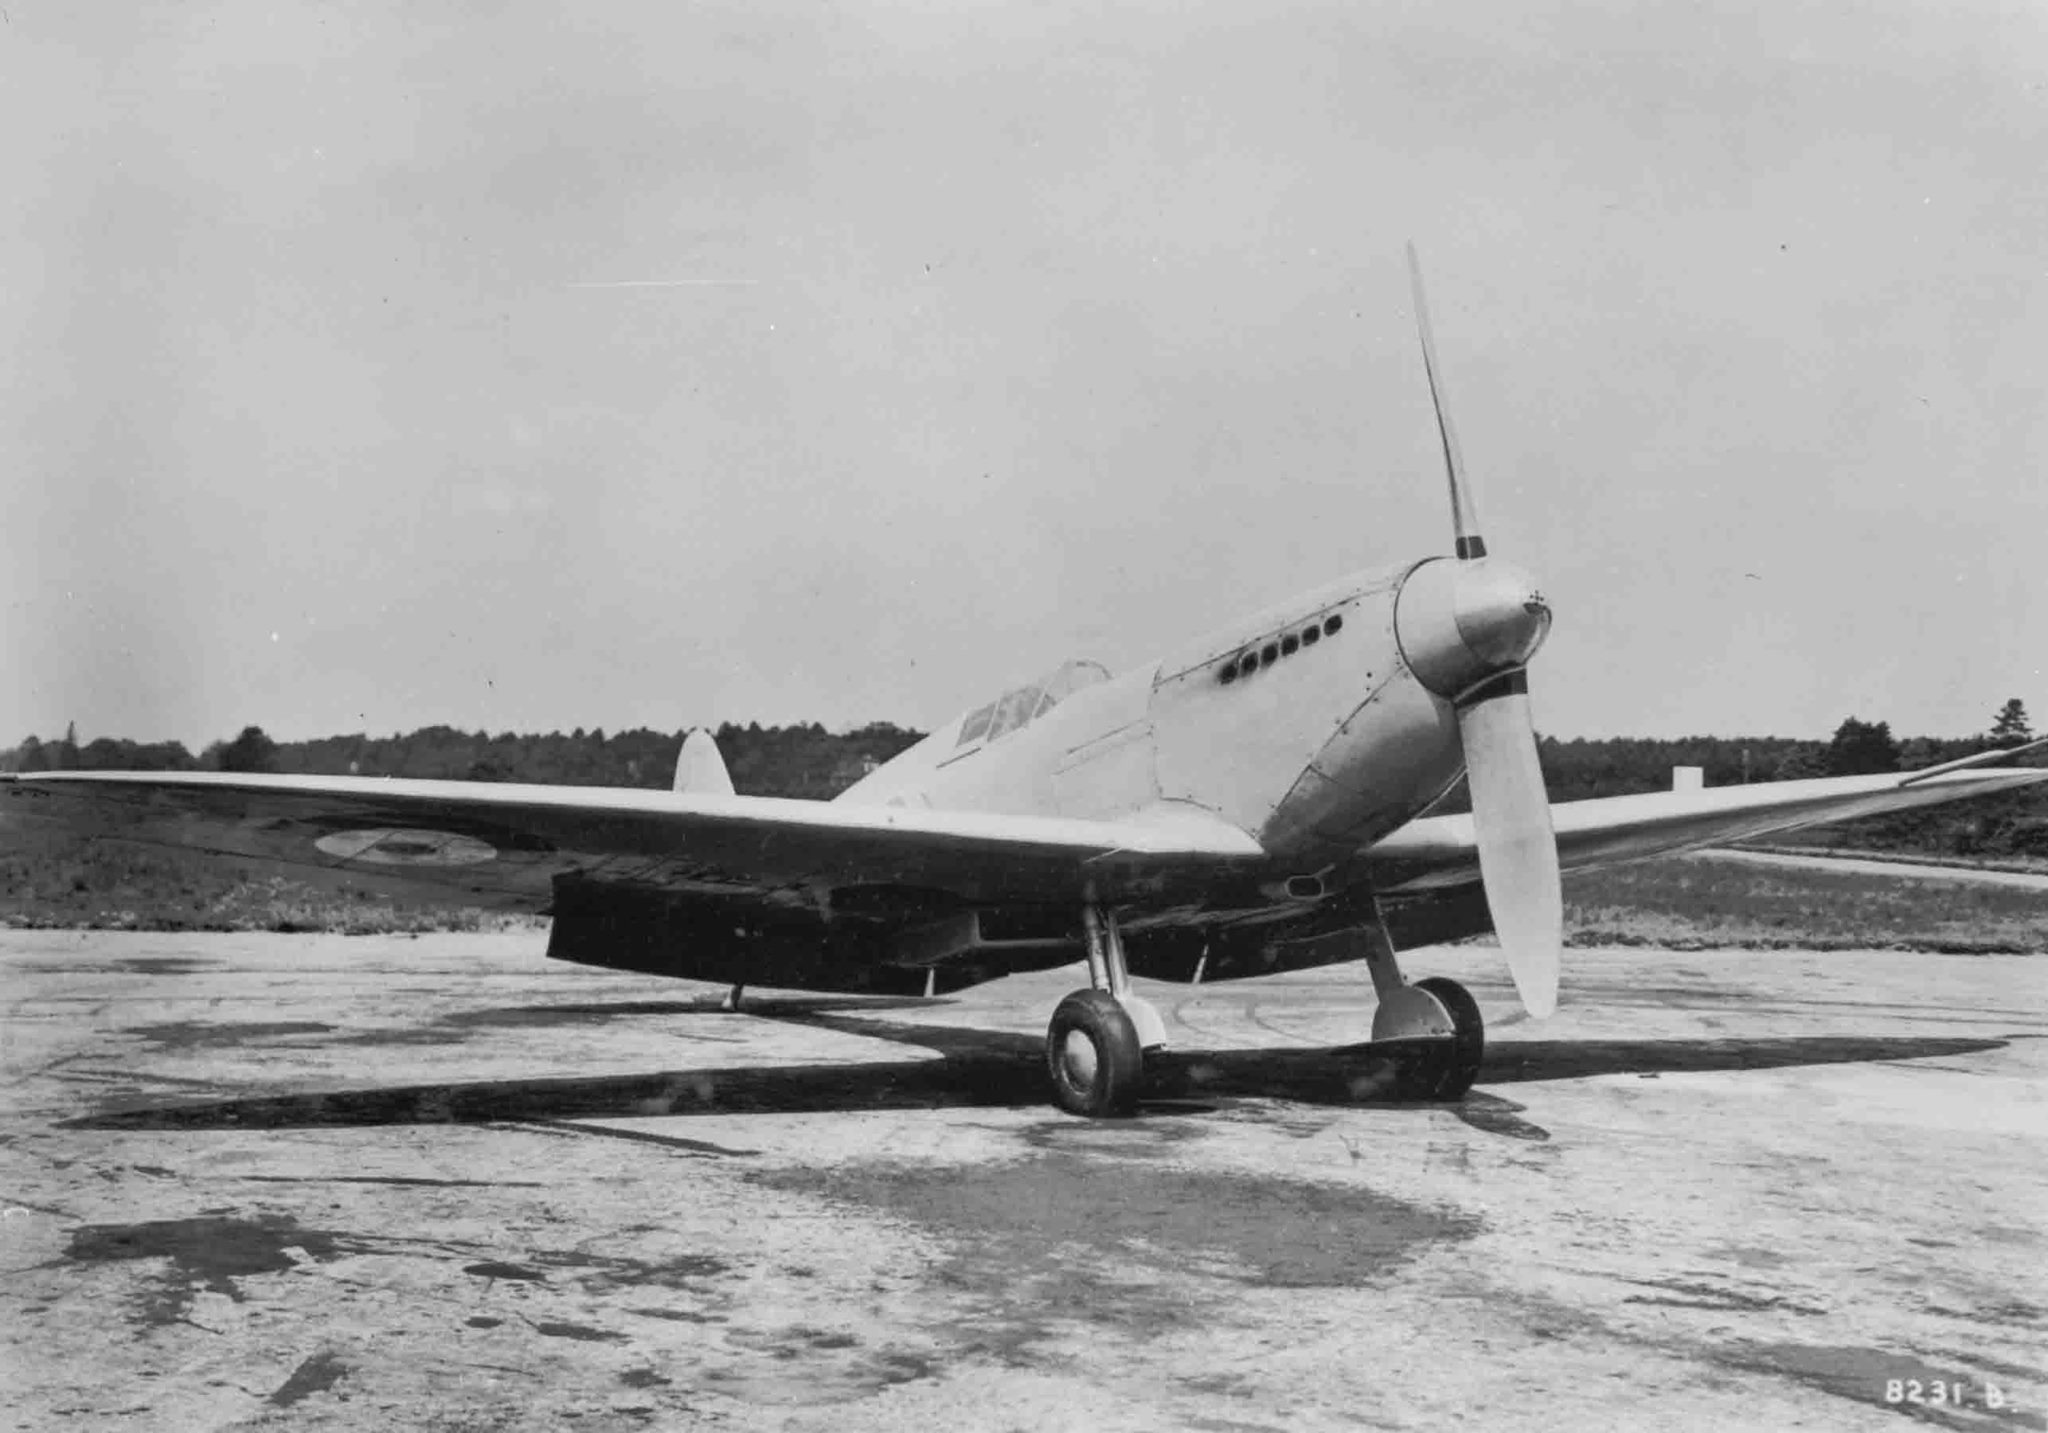 There she is ! The very first Spitfire. This is prototype K5054, photographed in 1936. The two-bladed propeller and conventional cockpit hood indicate this is an early version.